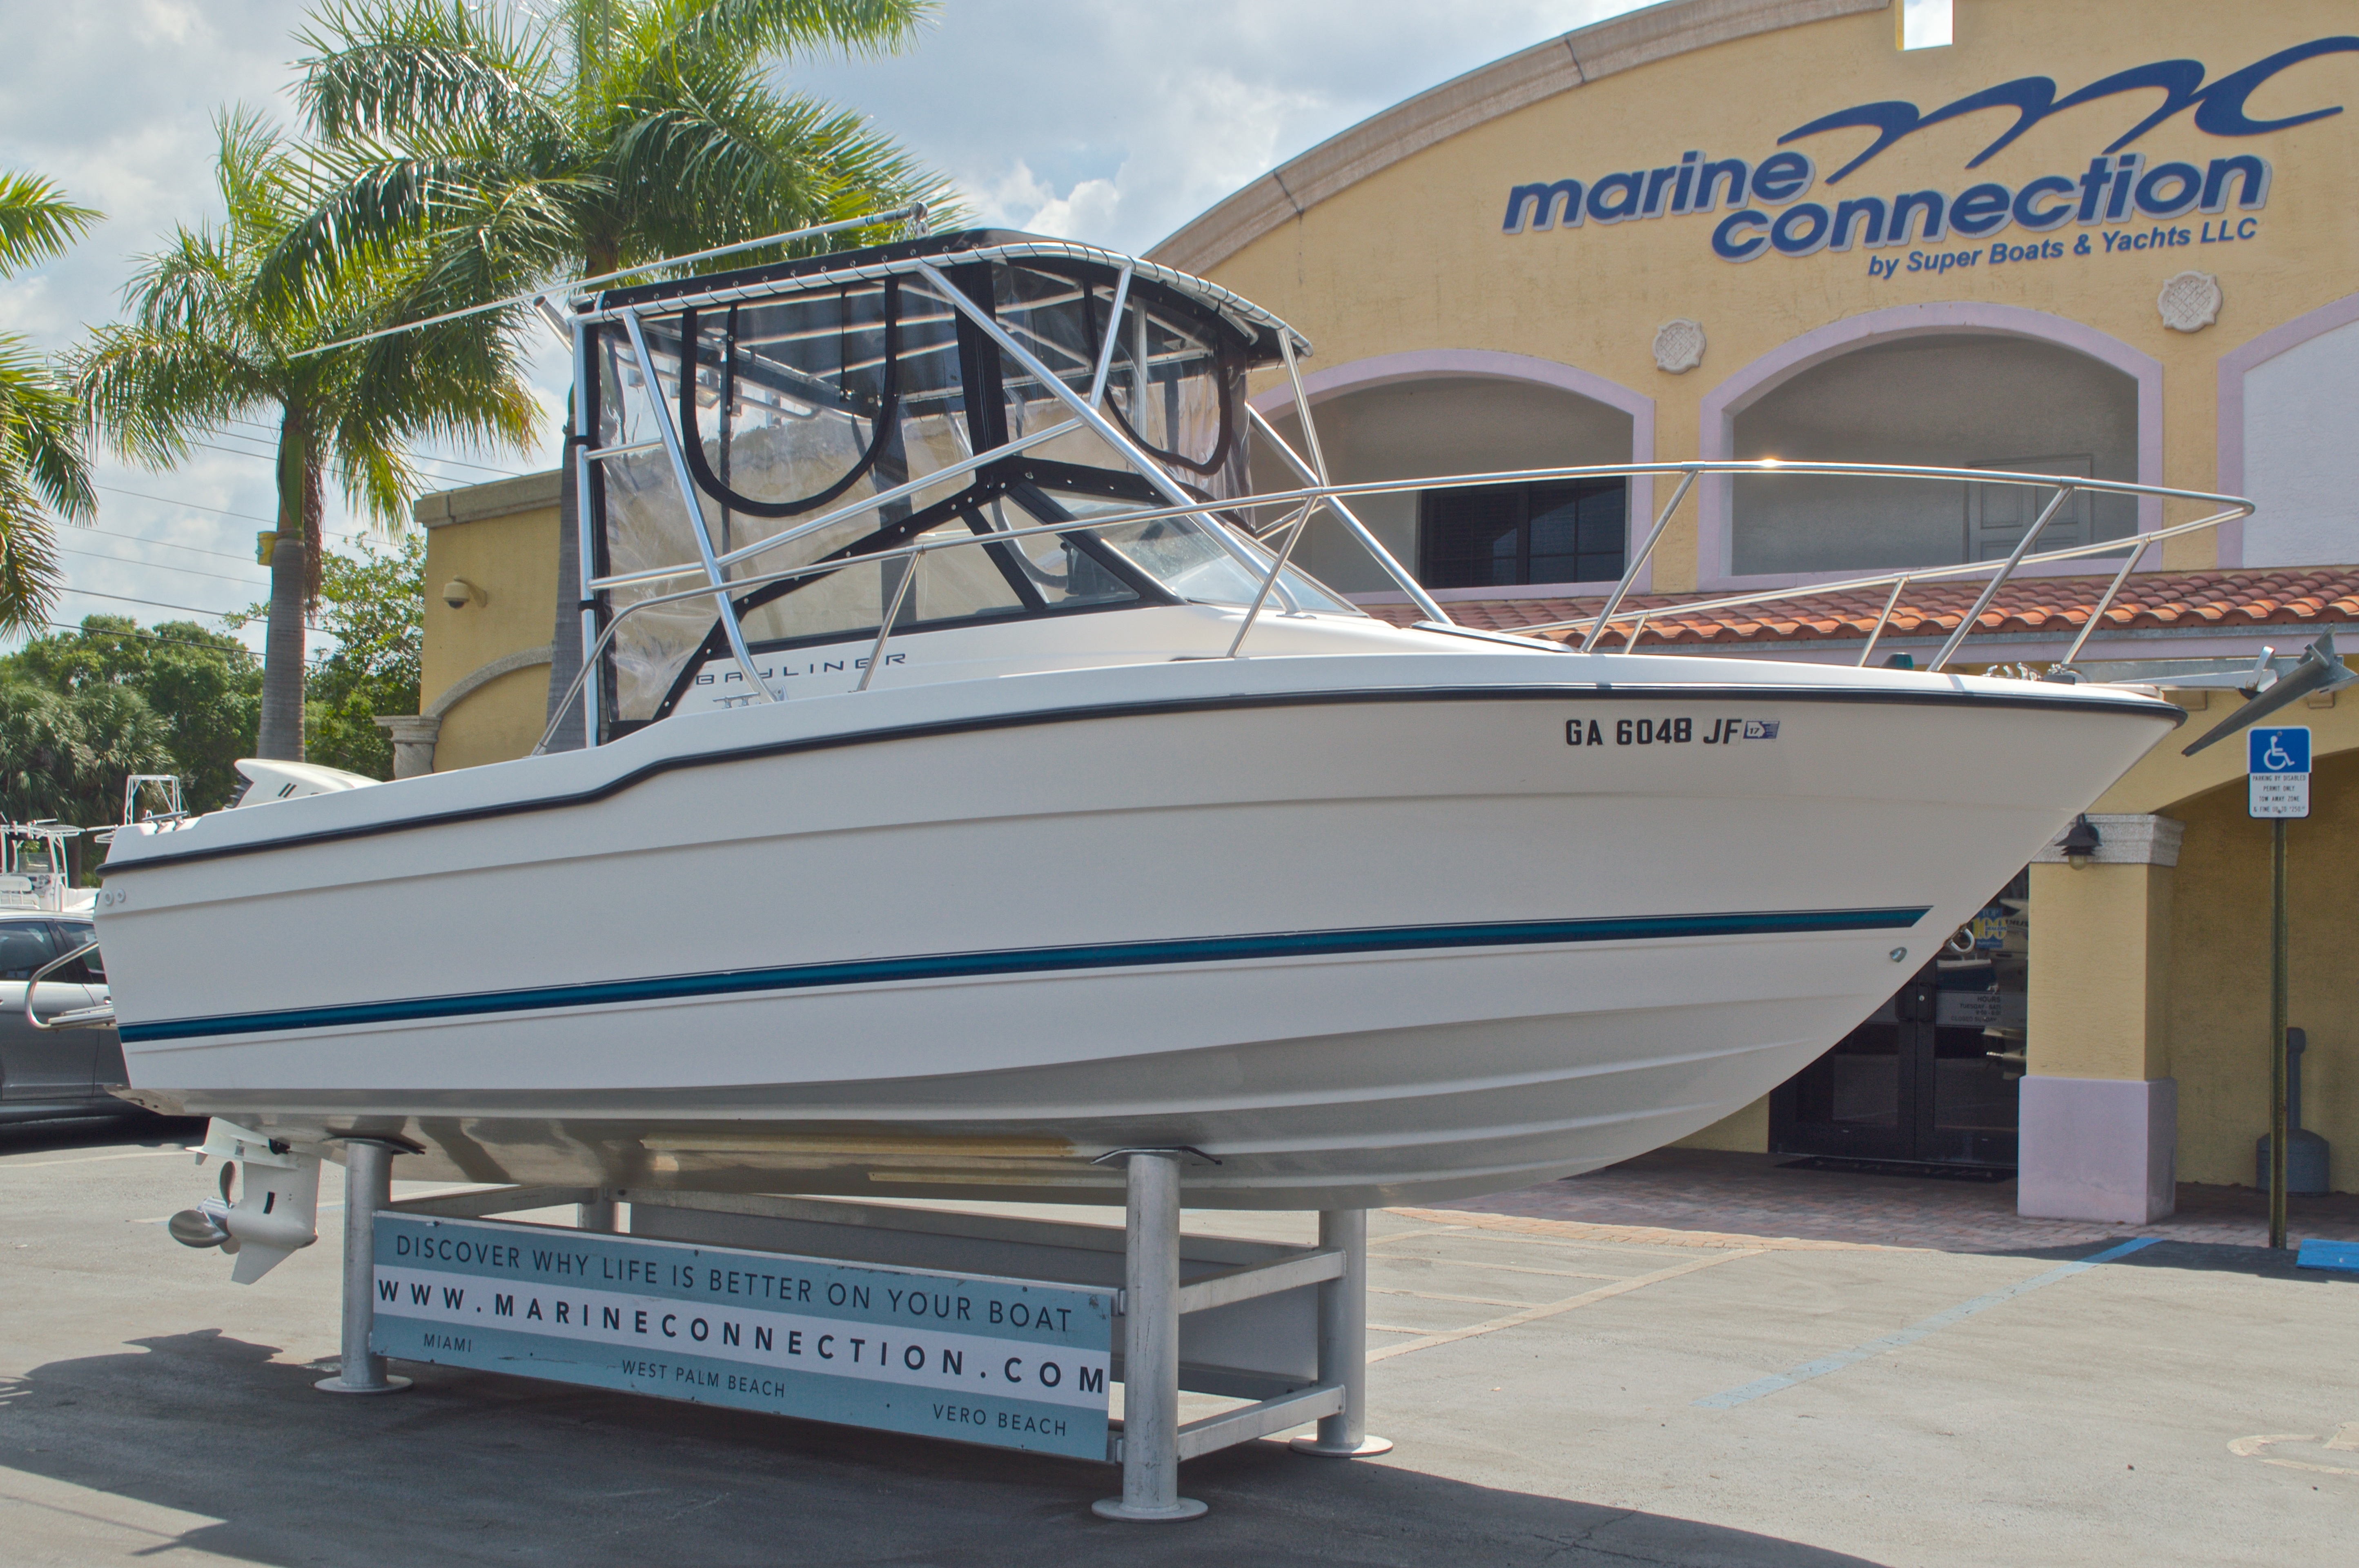 Thumbnail 1 for Used 1998 Bayliner Trophy 2002 WA Walkaround boat for sale in West Palm Beach, FL